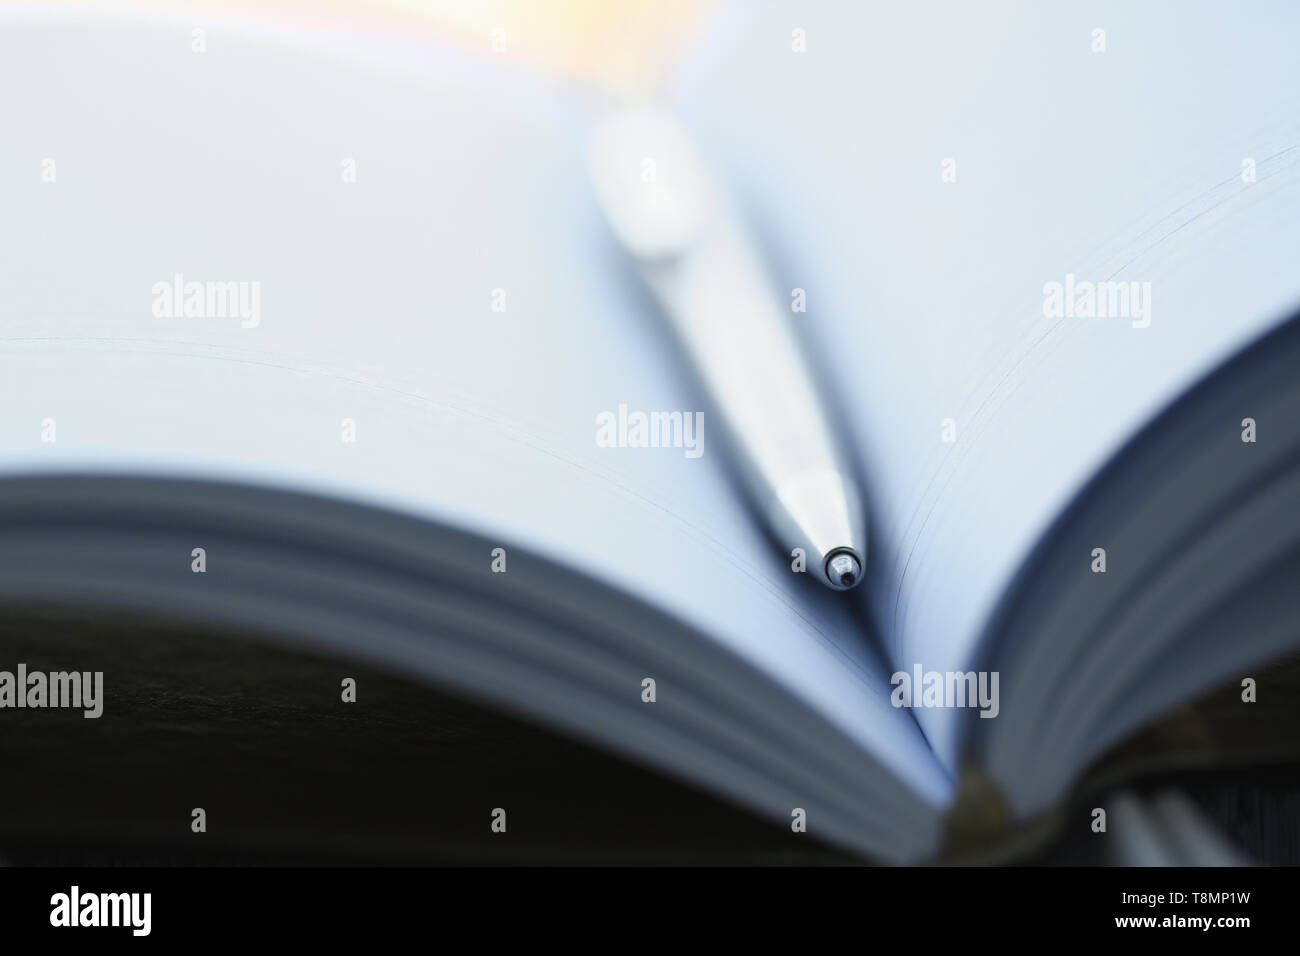 Silver pen lying on opened notebook sheet - Stock Image